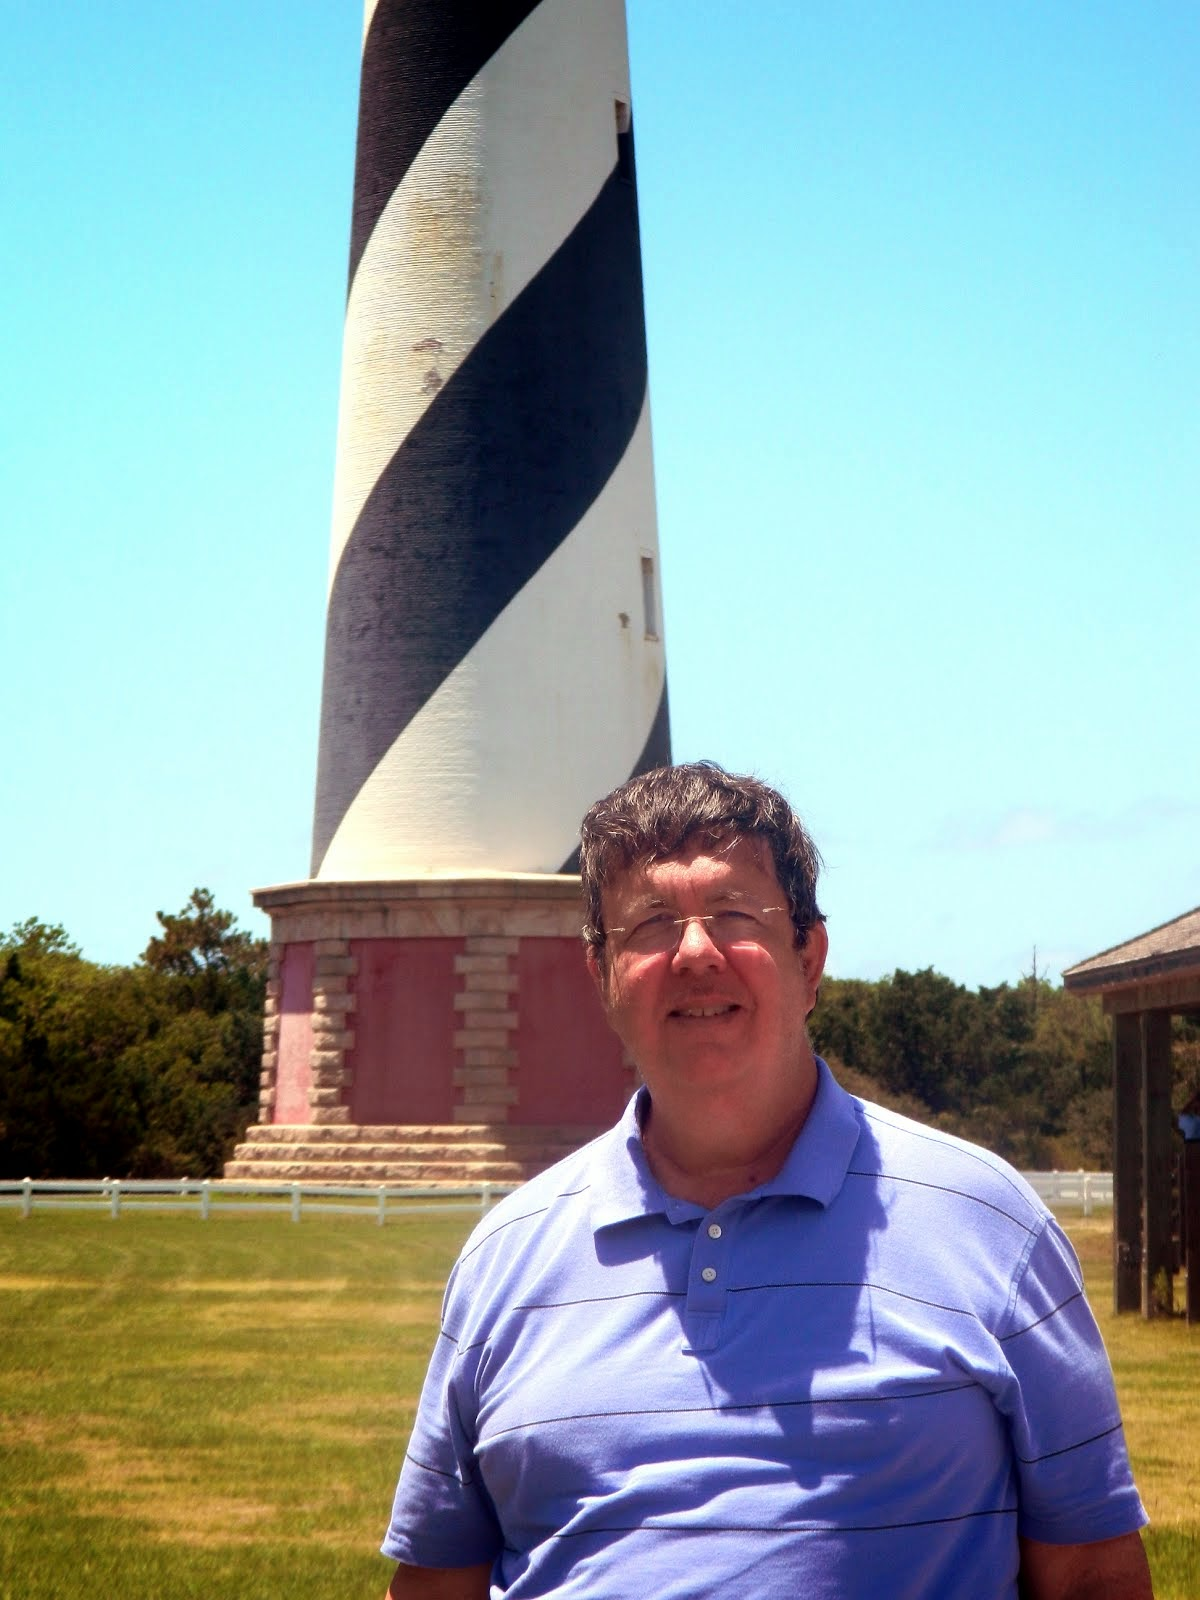 AT CAPE HATTERAS LIGHT HOUSE